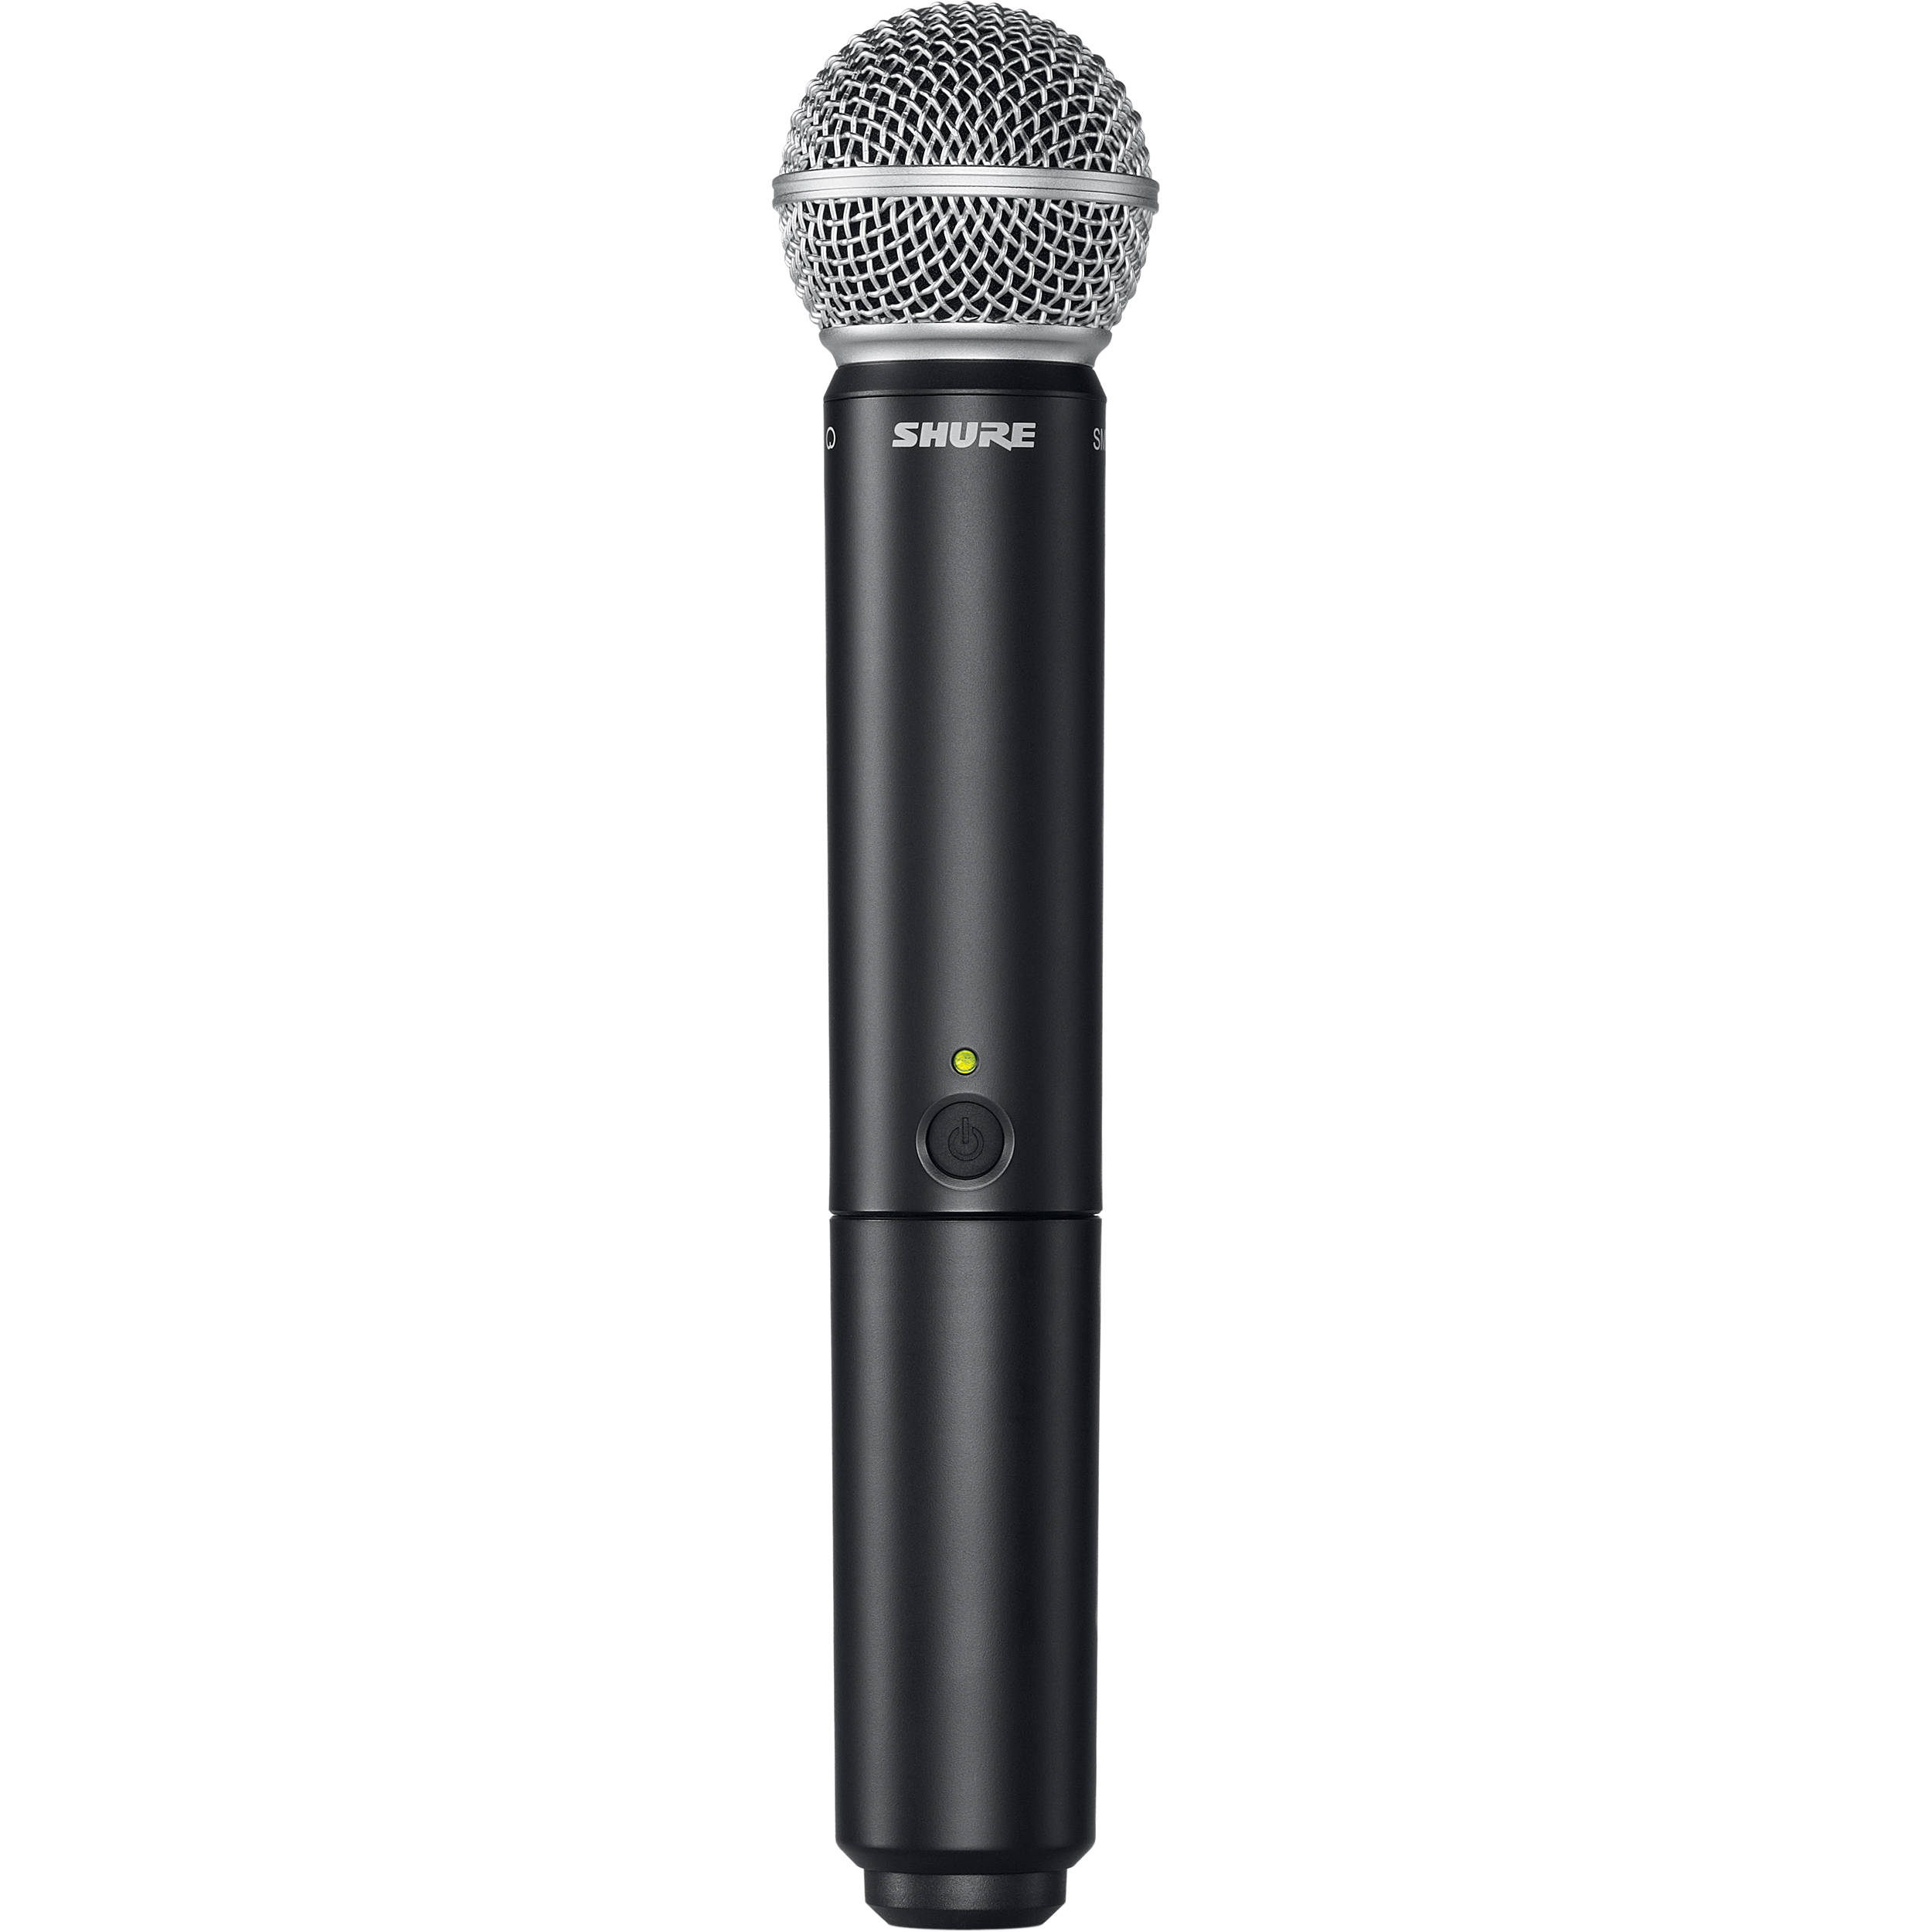 Shure BLX2/SM58 Handheld Wireless Microphone Transmitter with SM58 Capsule  (H10: 542 to 572 MHz)